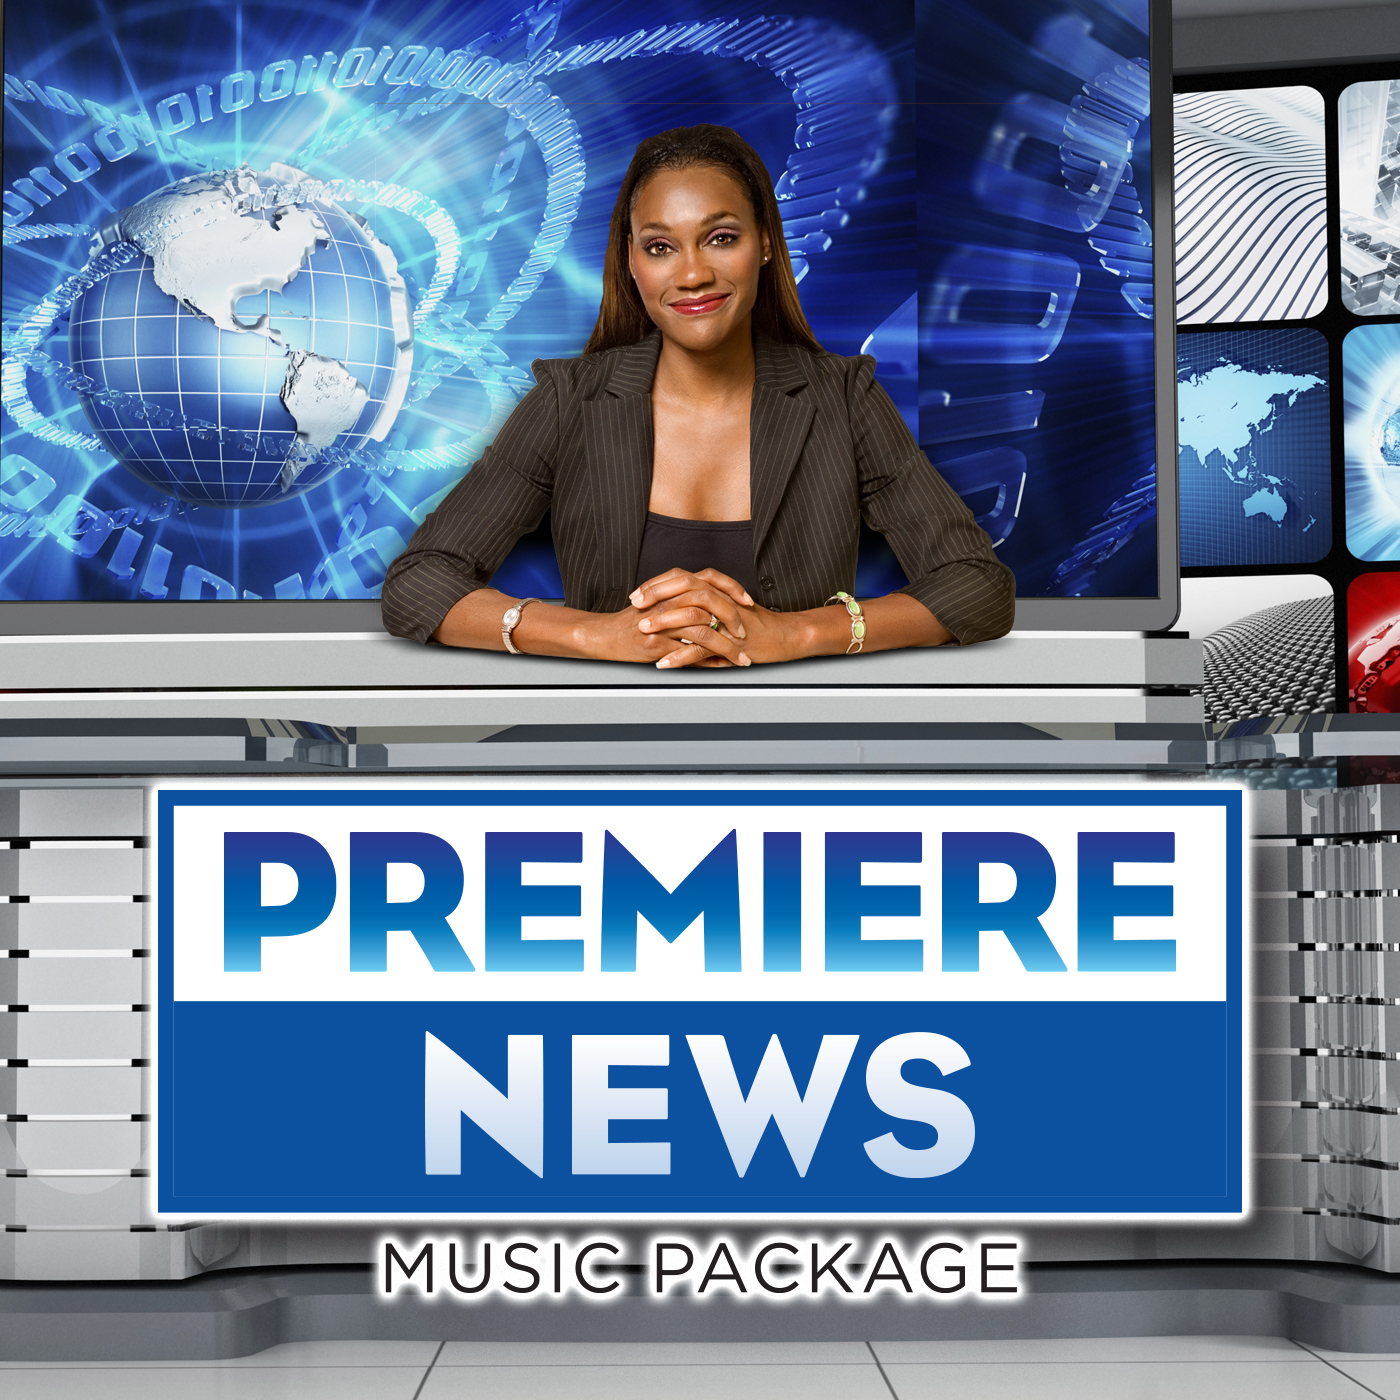 Premiere News Music Package